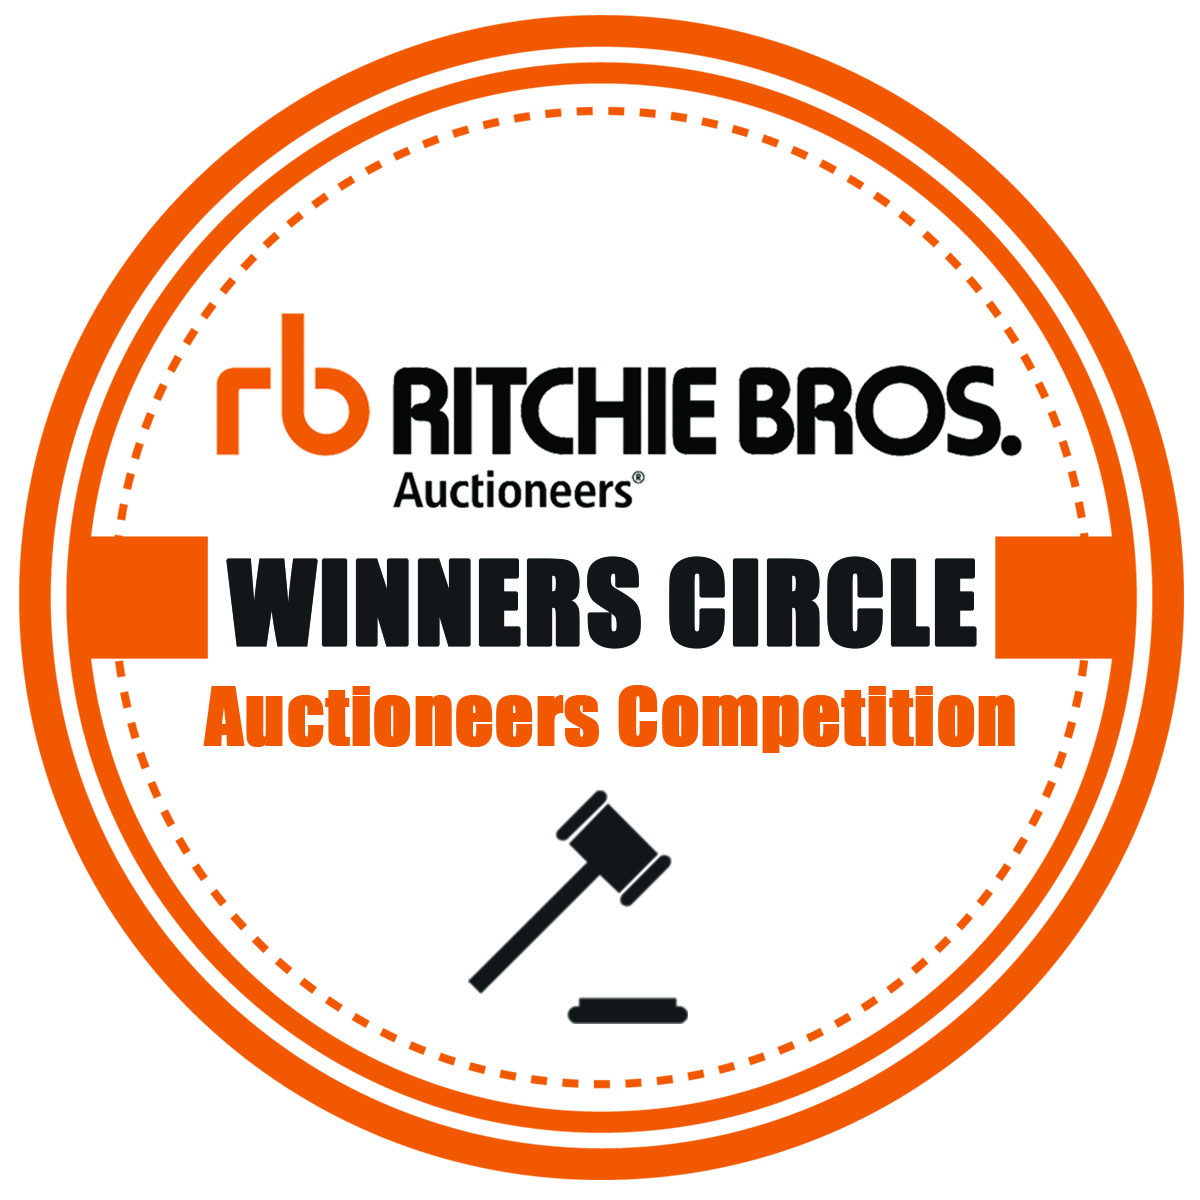 Ritchie Bros  Winners Circle Auctioneers Competition & Horse